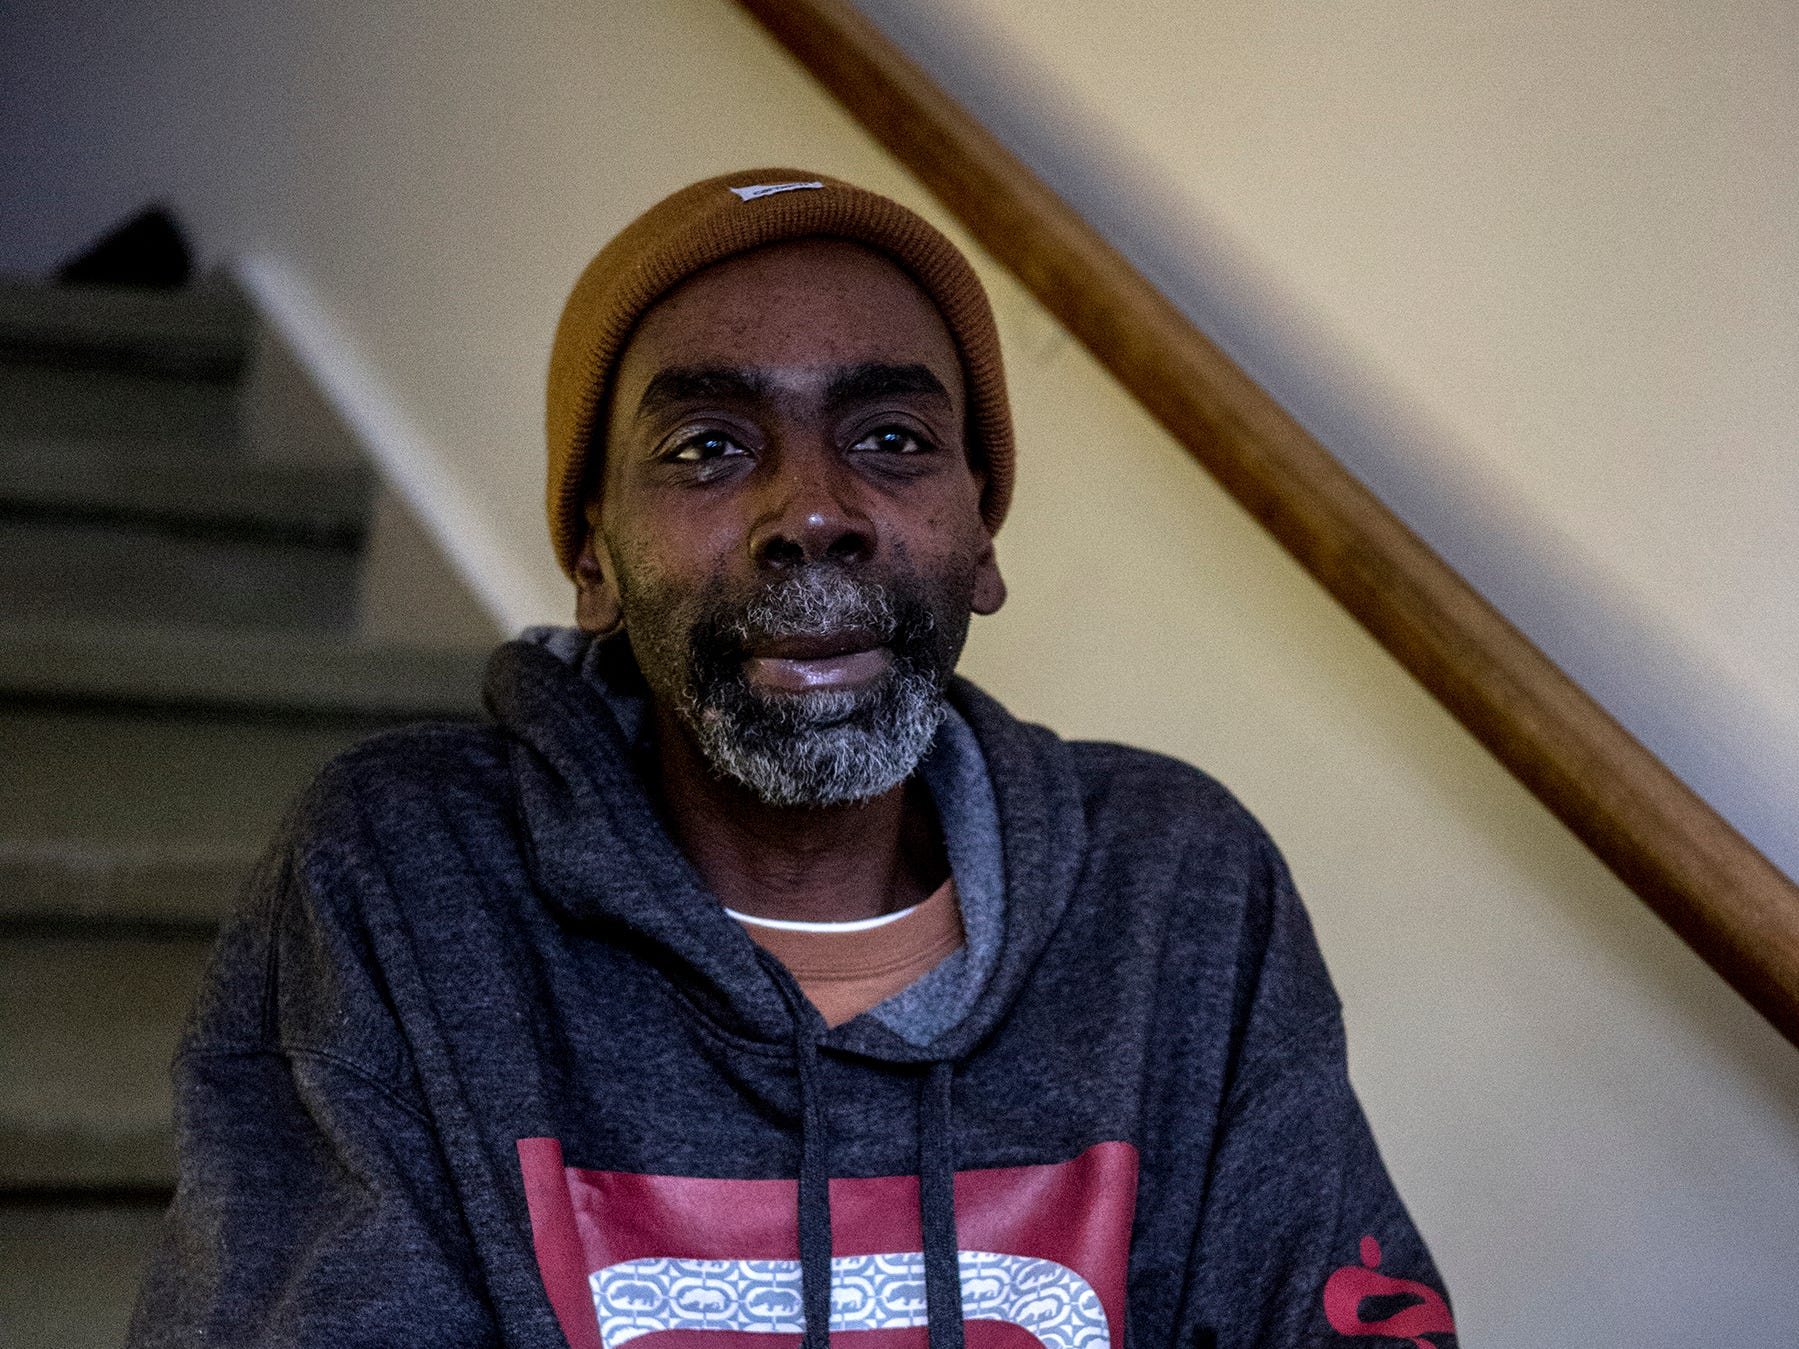 Mike Smith said he has been homeless for years. He is a graduate of Newark high School.  He sought shelter at Central Christian Church at the end of January when temperatures dropped below zero.